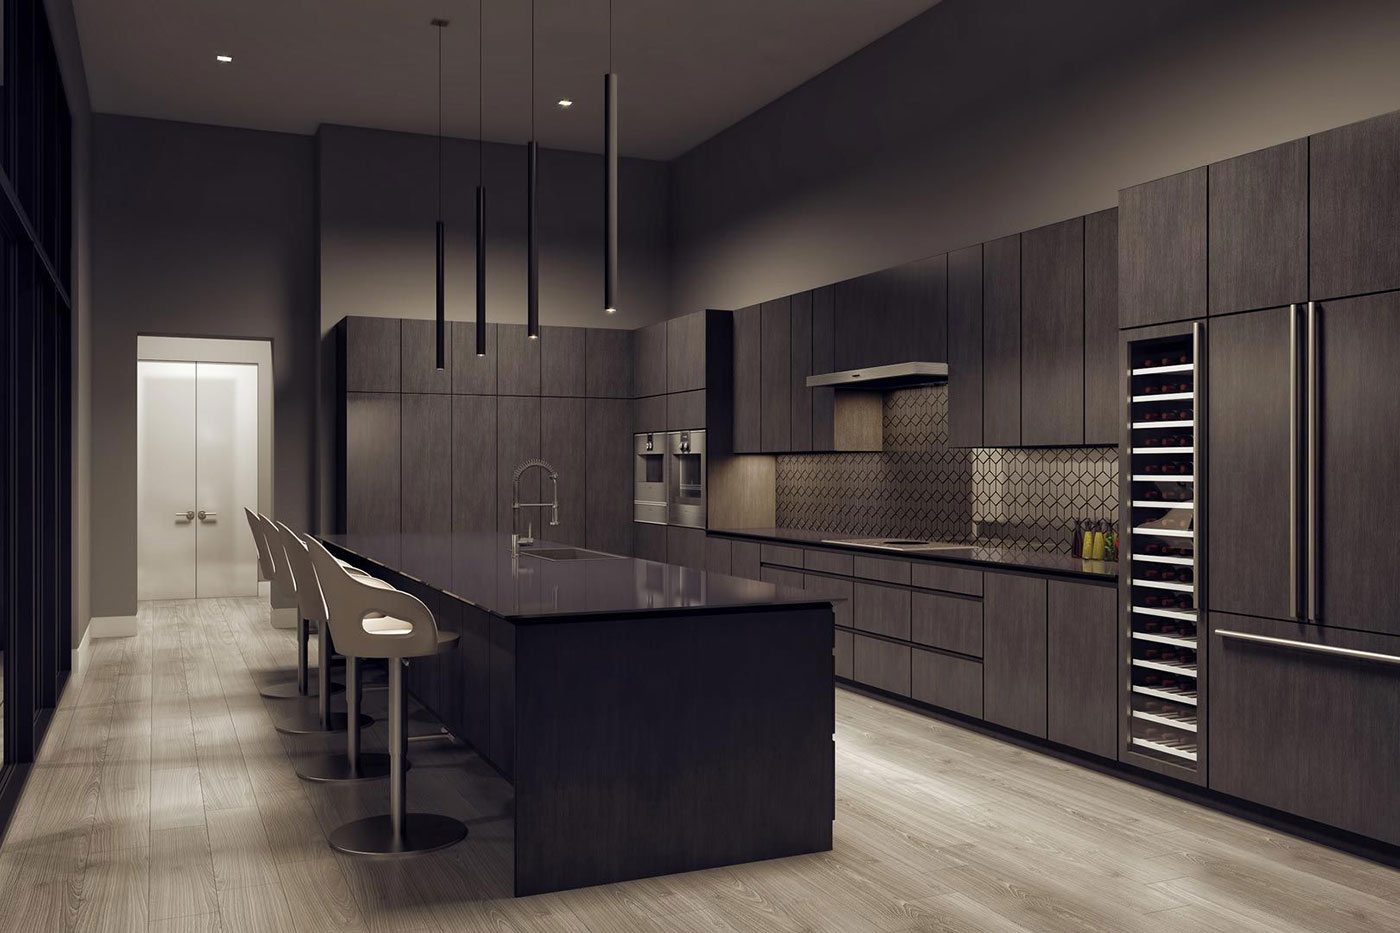 Obegi-Home-Giorgetti-Kitchens-5